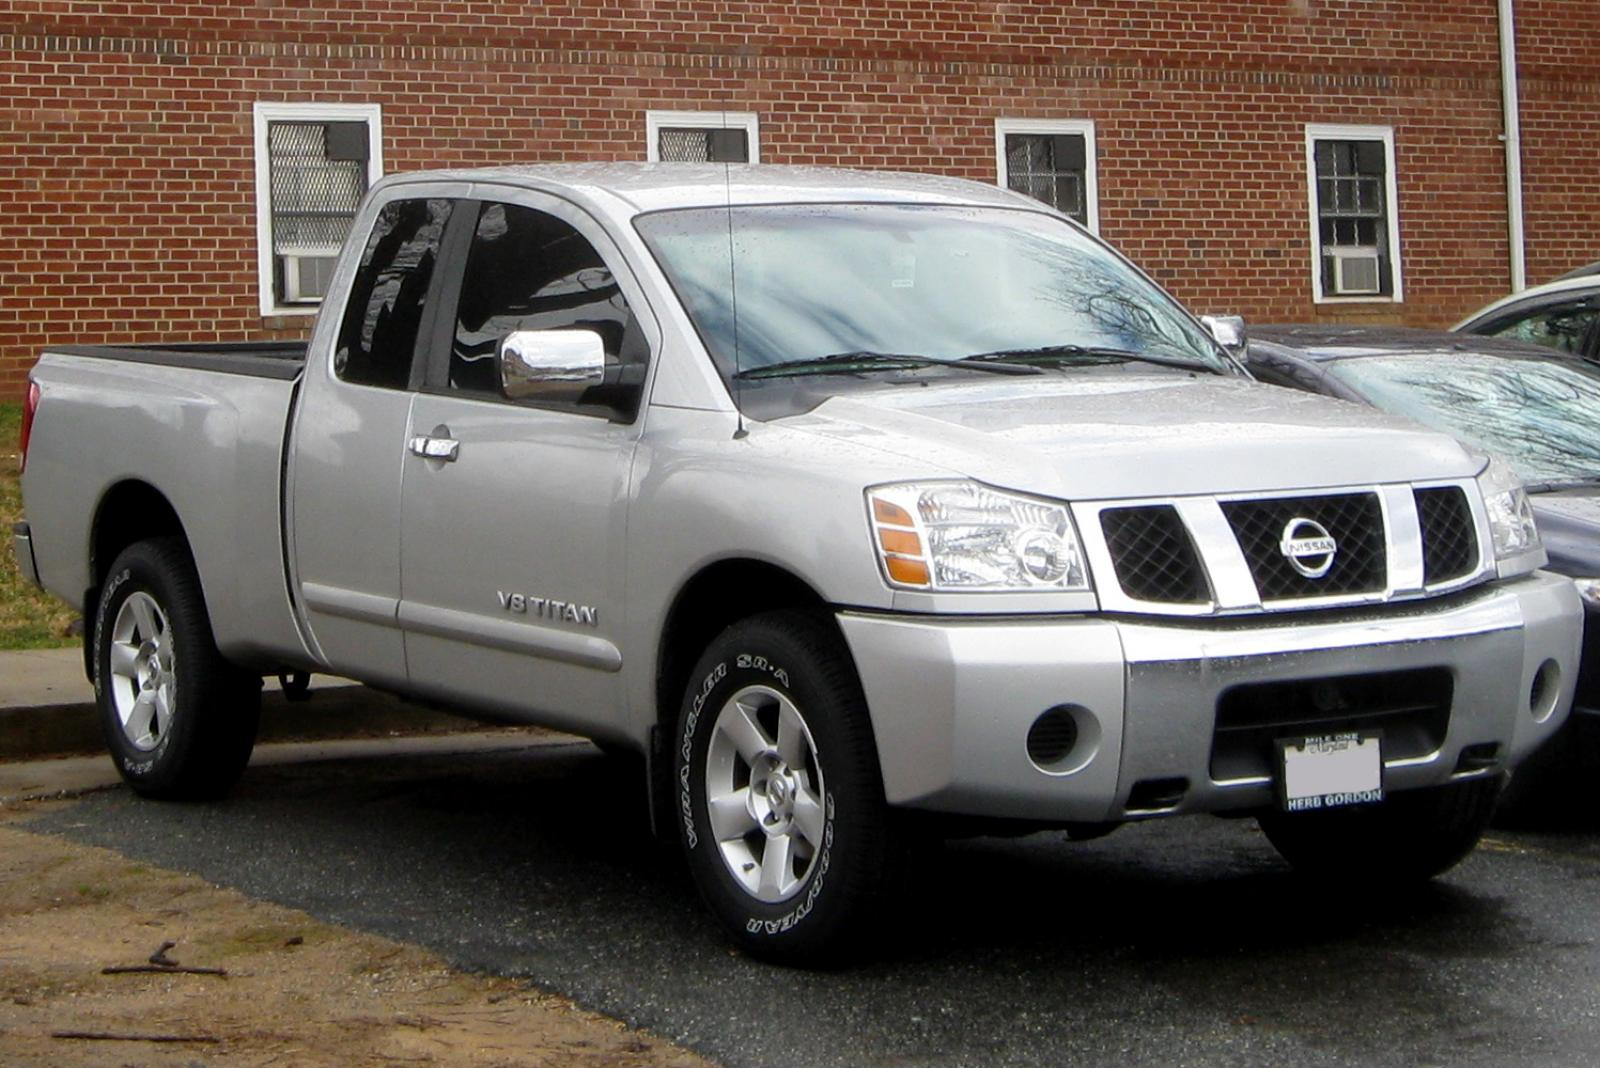 2010 nissan titan information and photos zombiedrive. Black Bedroom Furniture Sets. Home Design Ideas